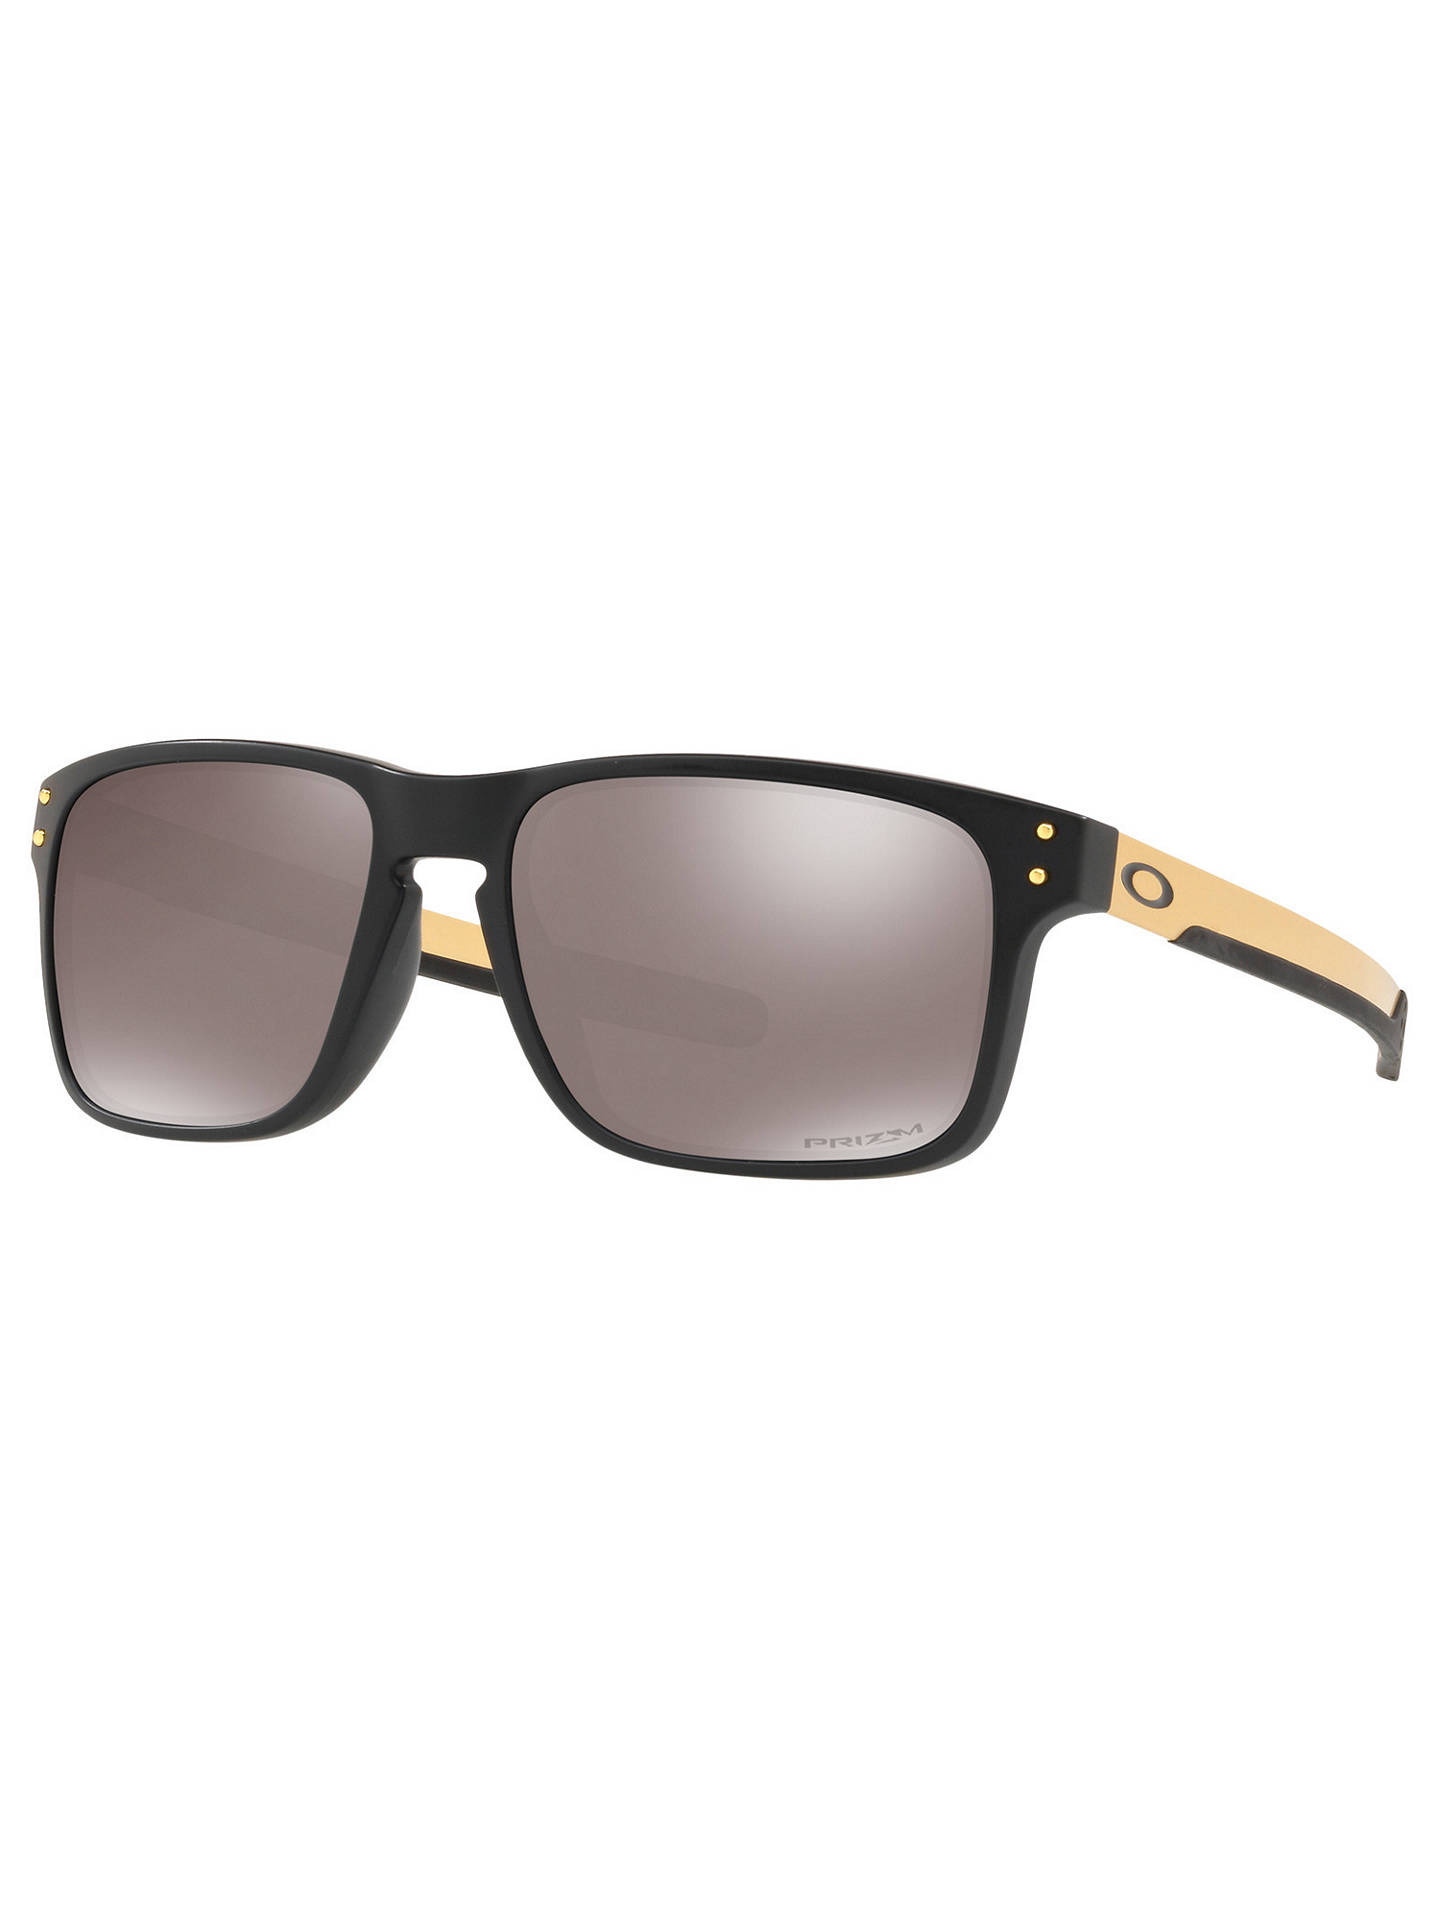 2eb582b458 Oakley OO9384 Men s Holbrook Prizm Polarised Sunglasses at John ...